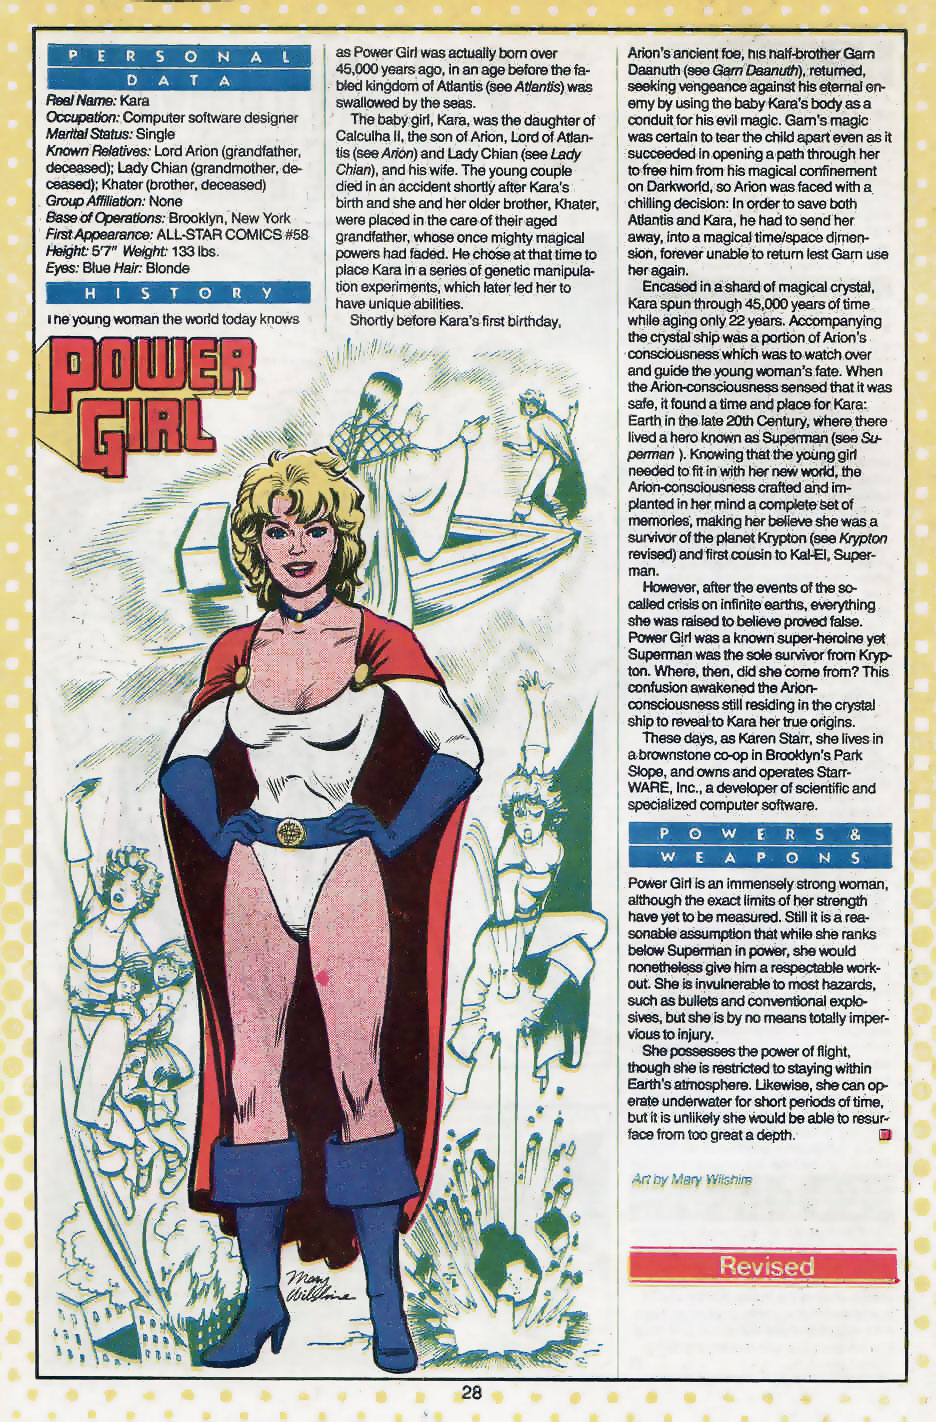 Power Girl Who's Who by Mary Wilshire